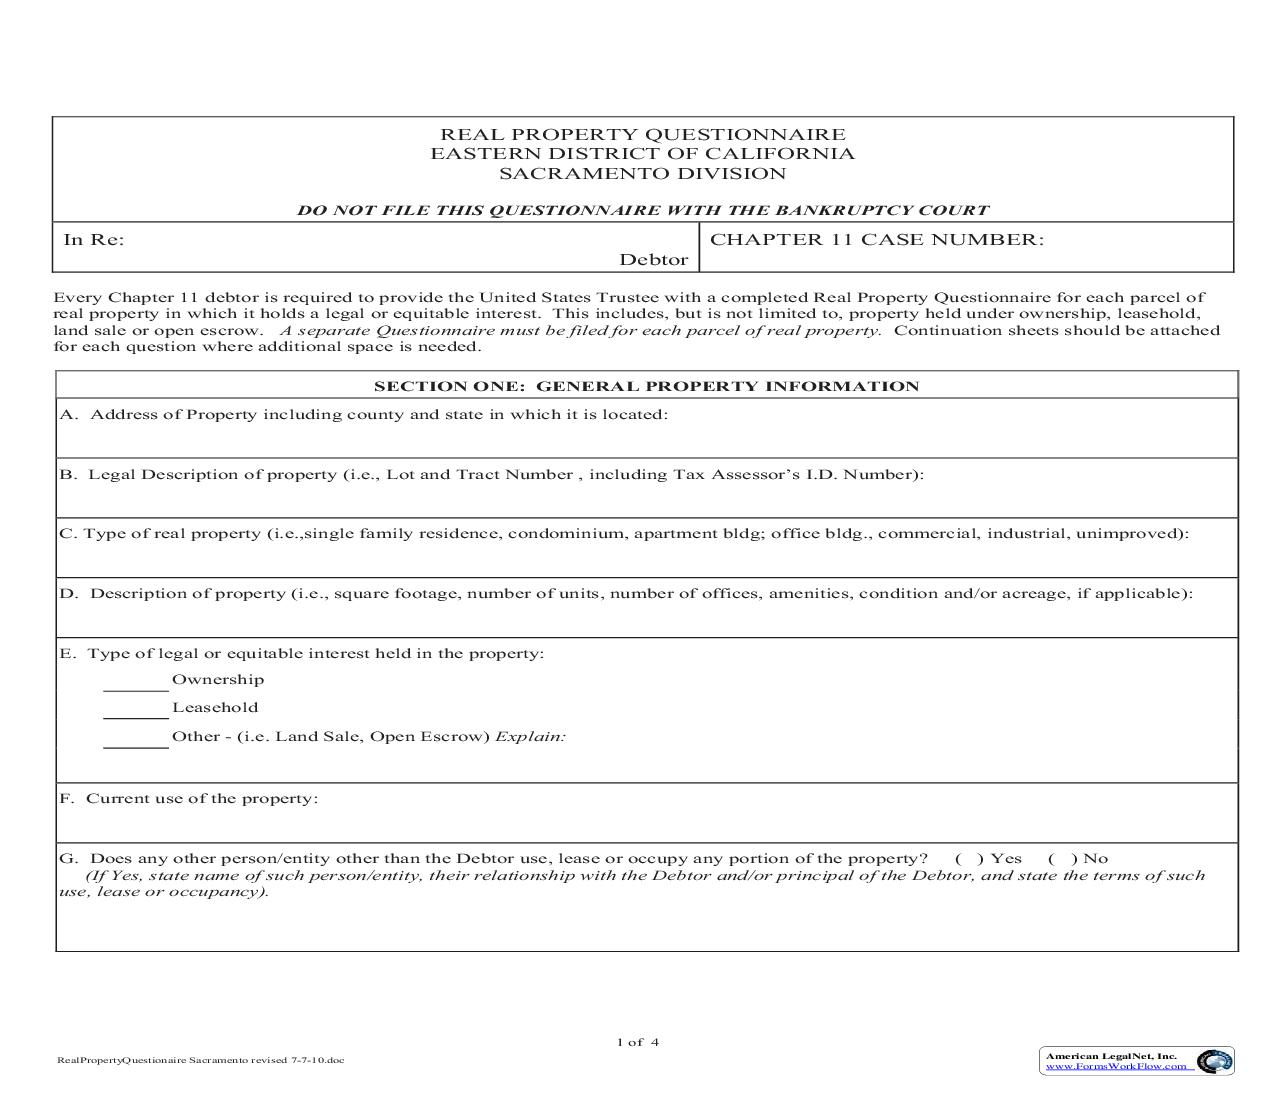 Chapter 11 Real Property Questionnaire (Sacramento) | Pdf Fpdf Doc Docx | California